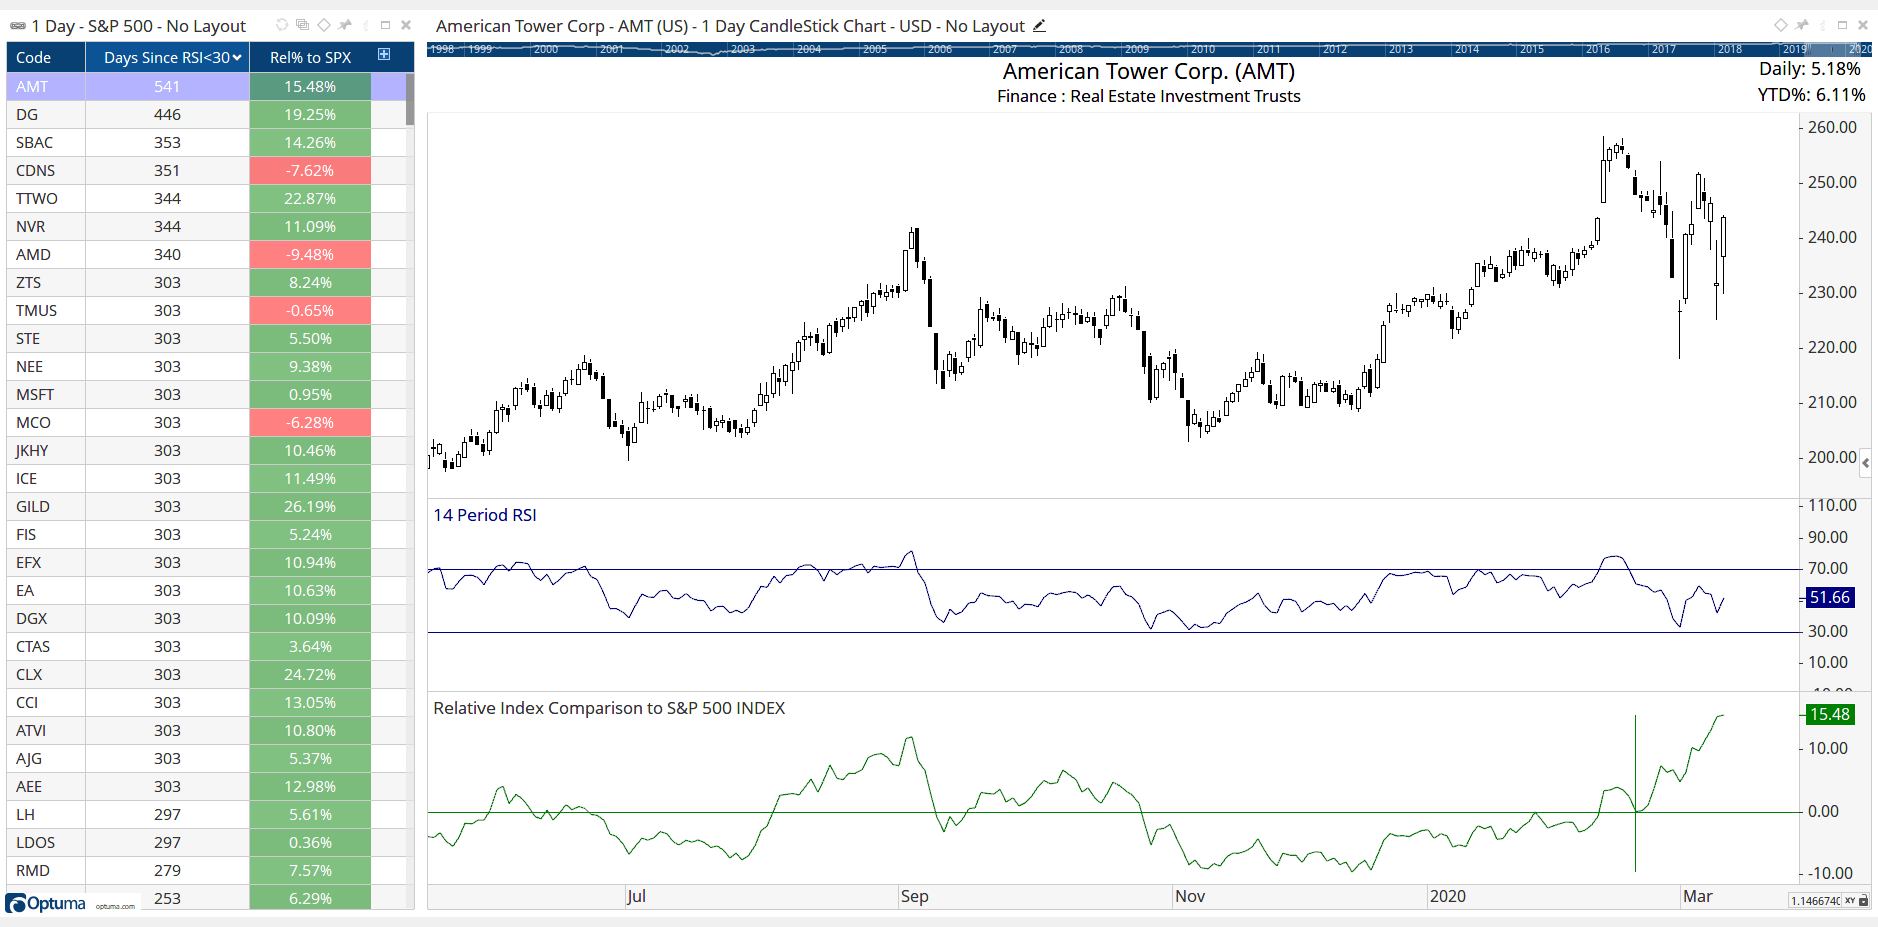 all-star-charts-s-and-p-500-5